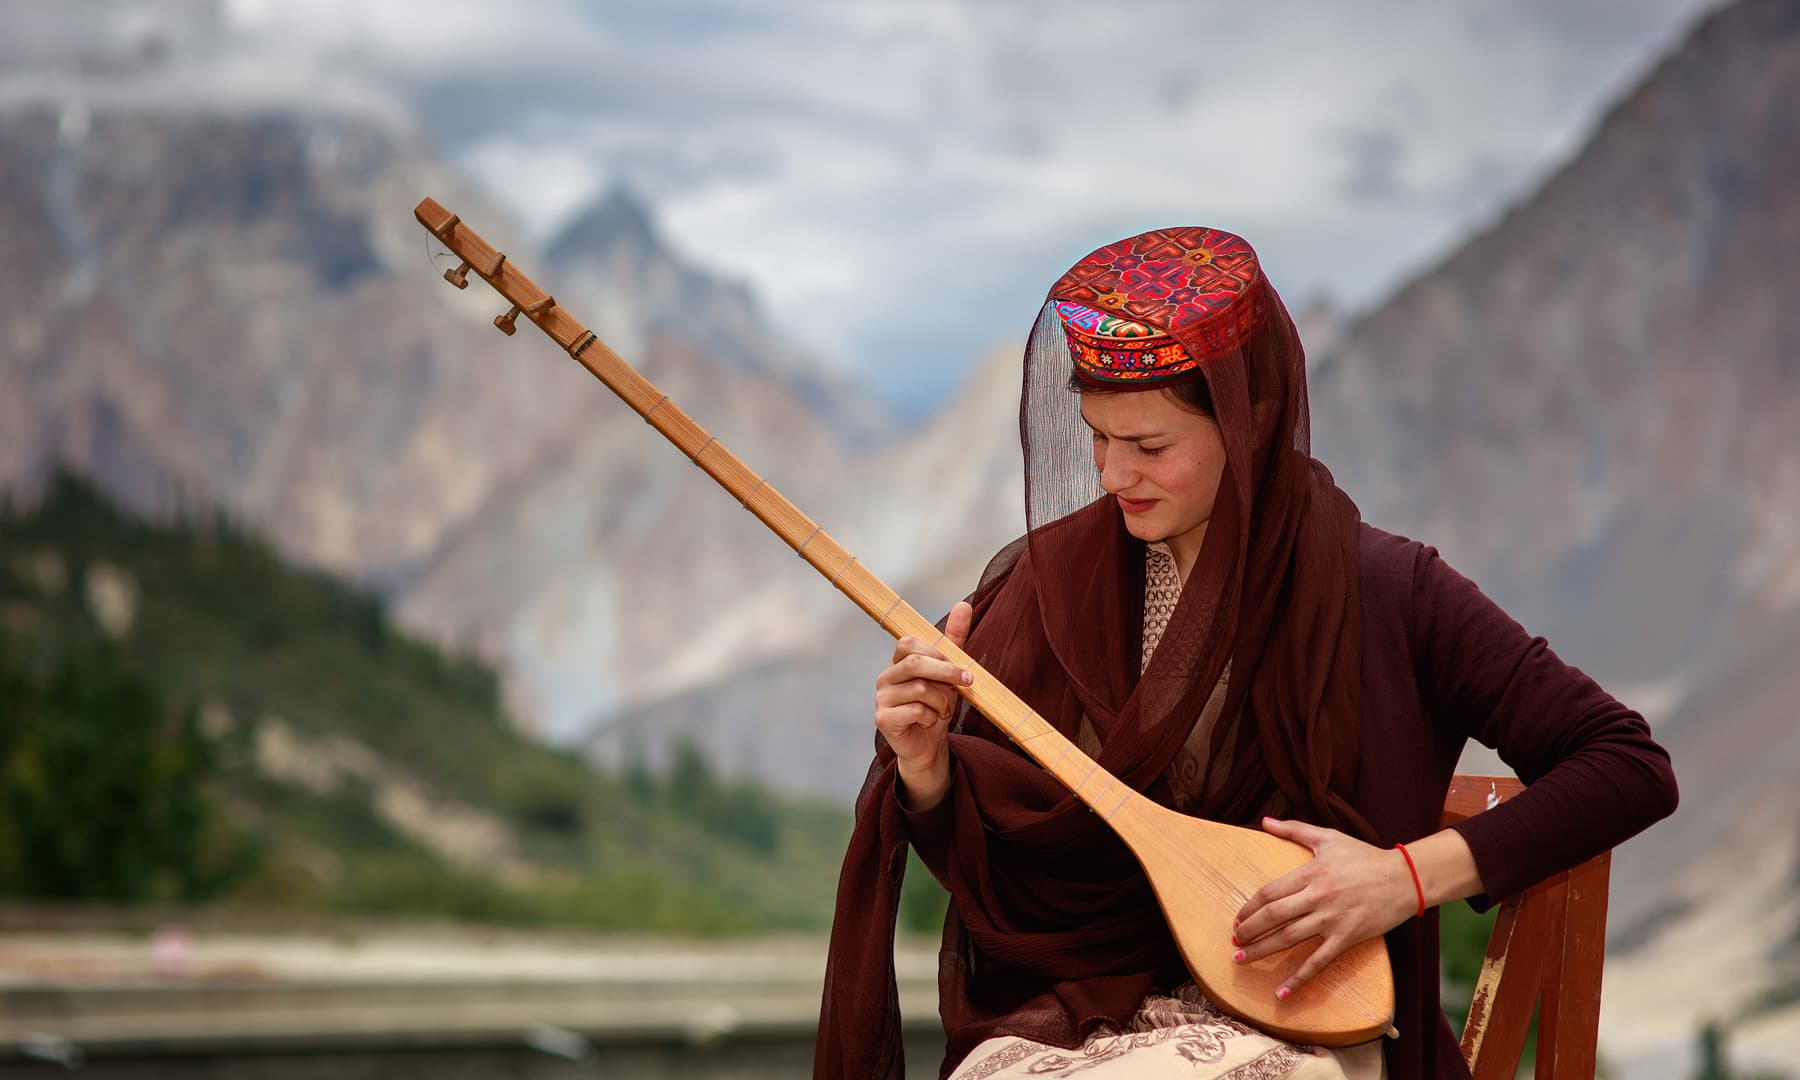 A girl practices a traditional musical instrument outdoors.